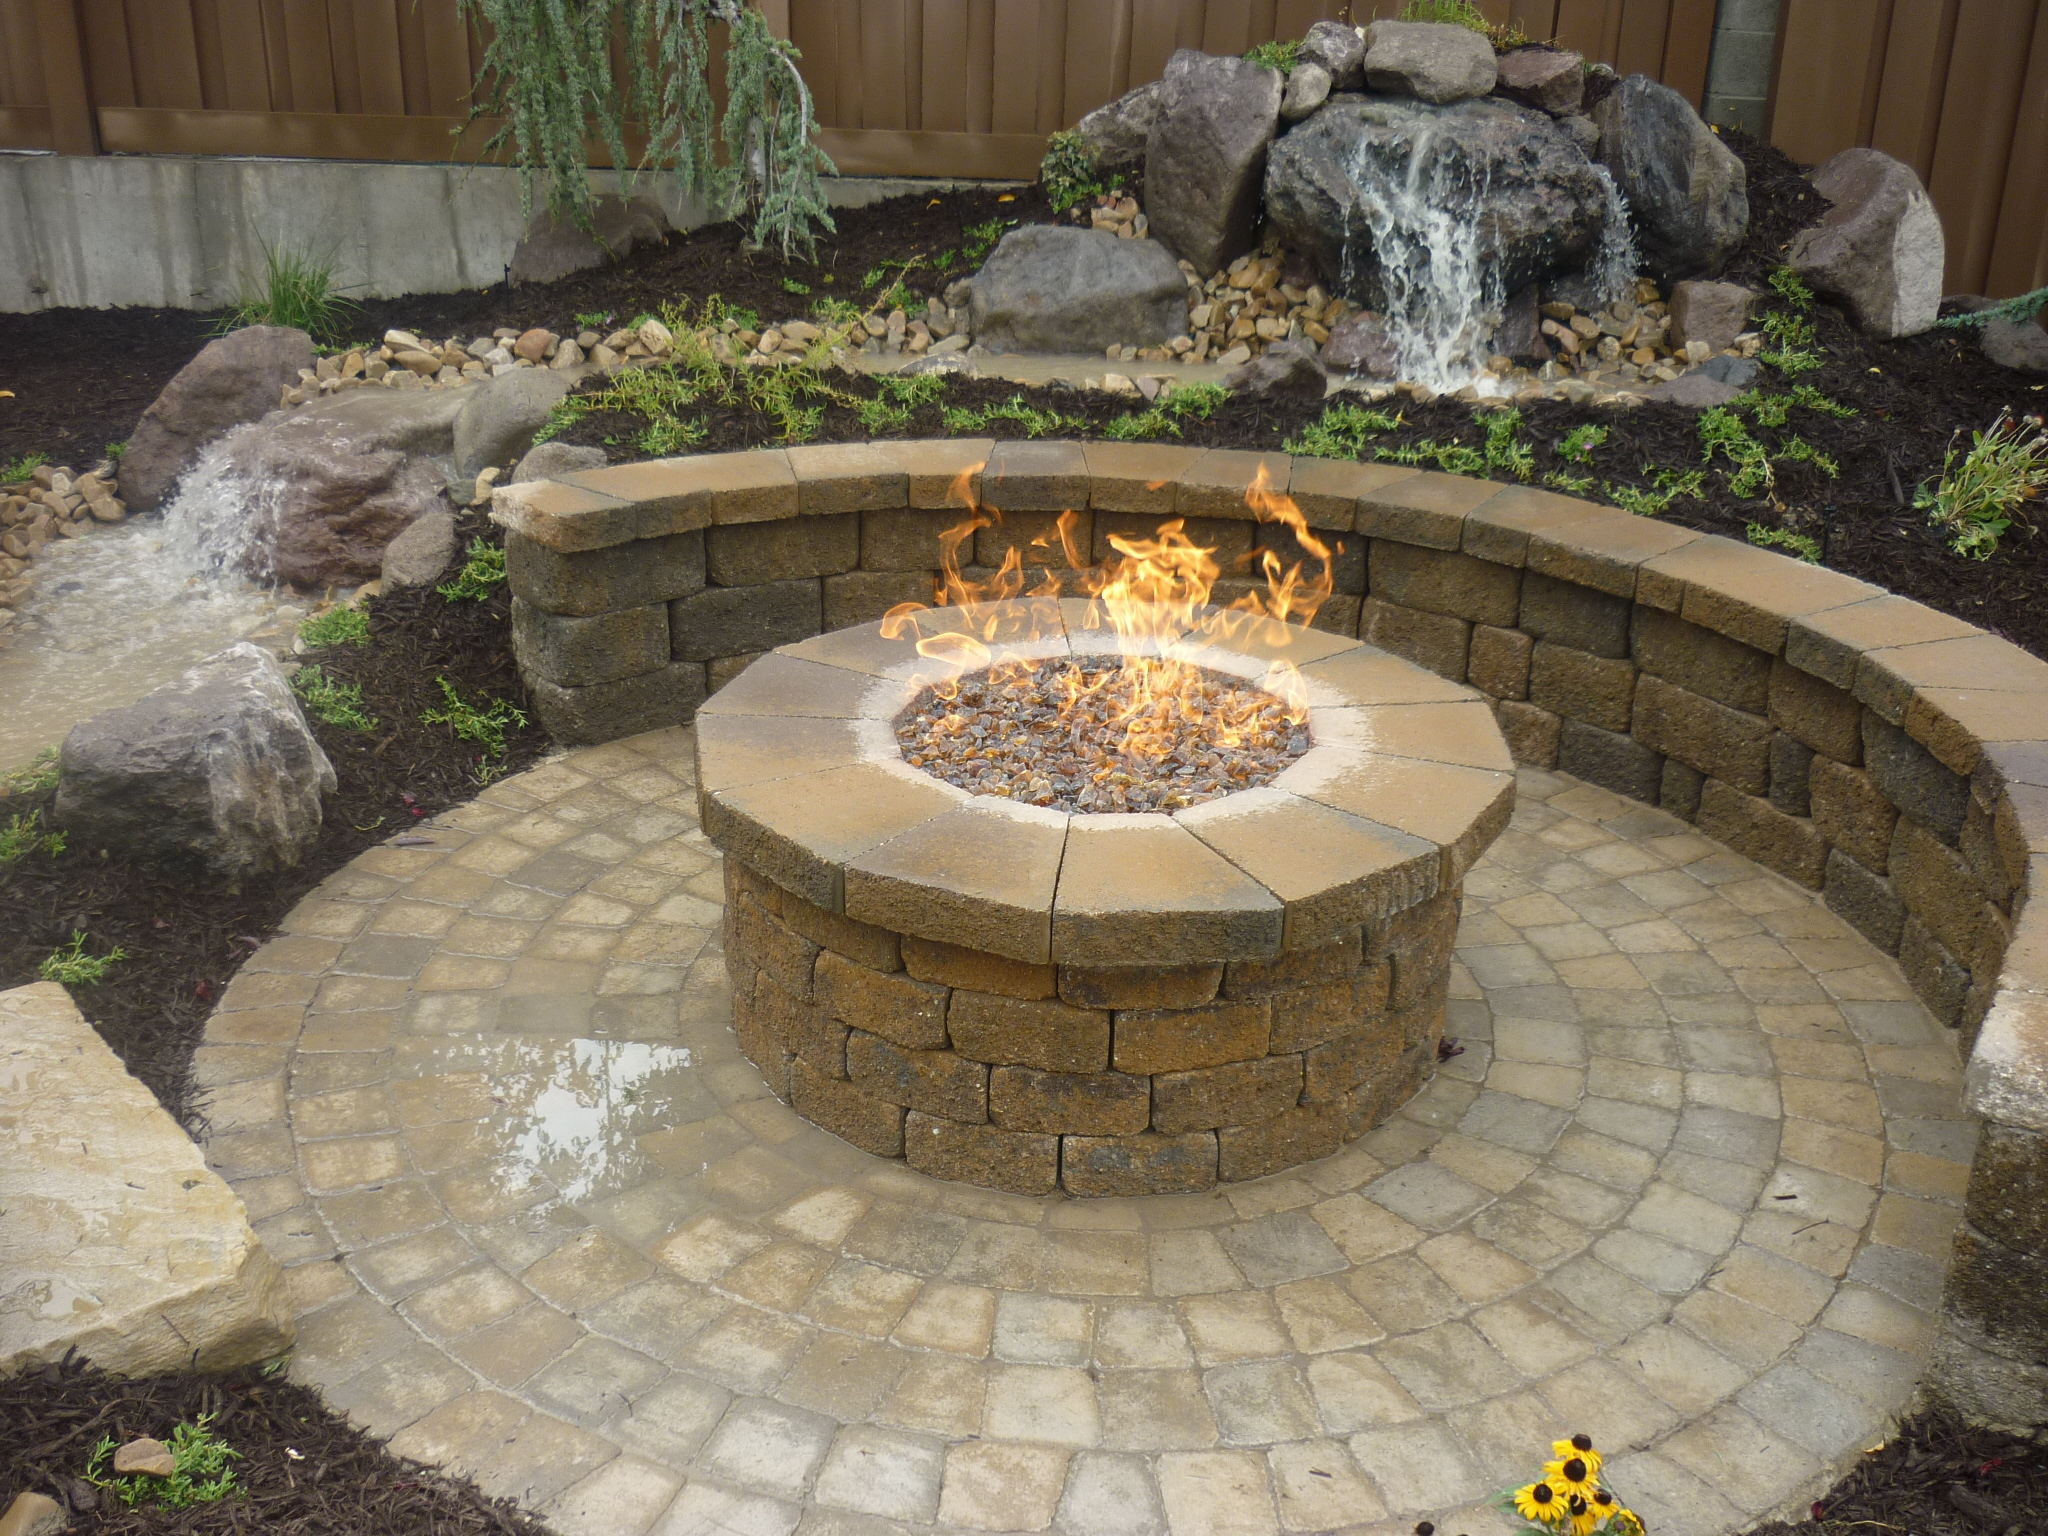 Utah Water Features Water Falls Rock Water Features And Fire In Utah Chris Jensen Landscaping In Salt Lake City And Utah County